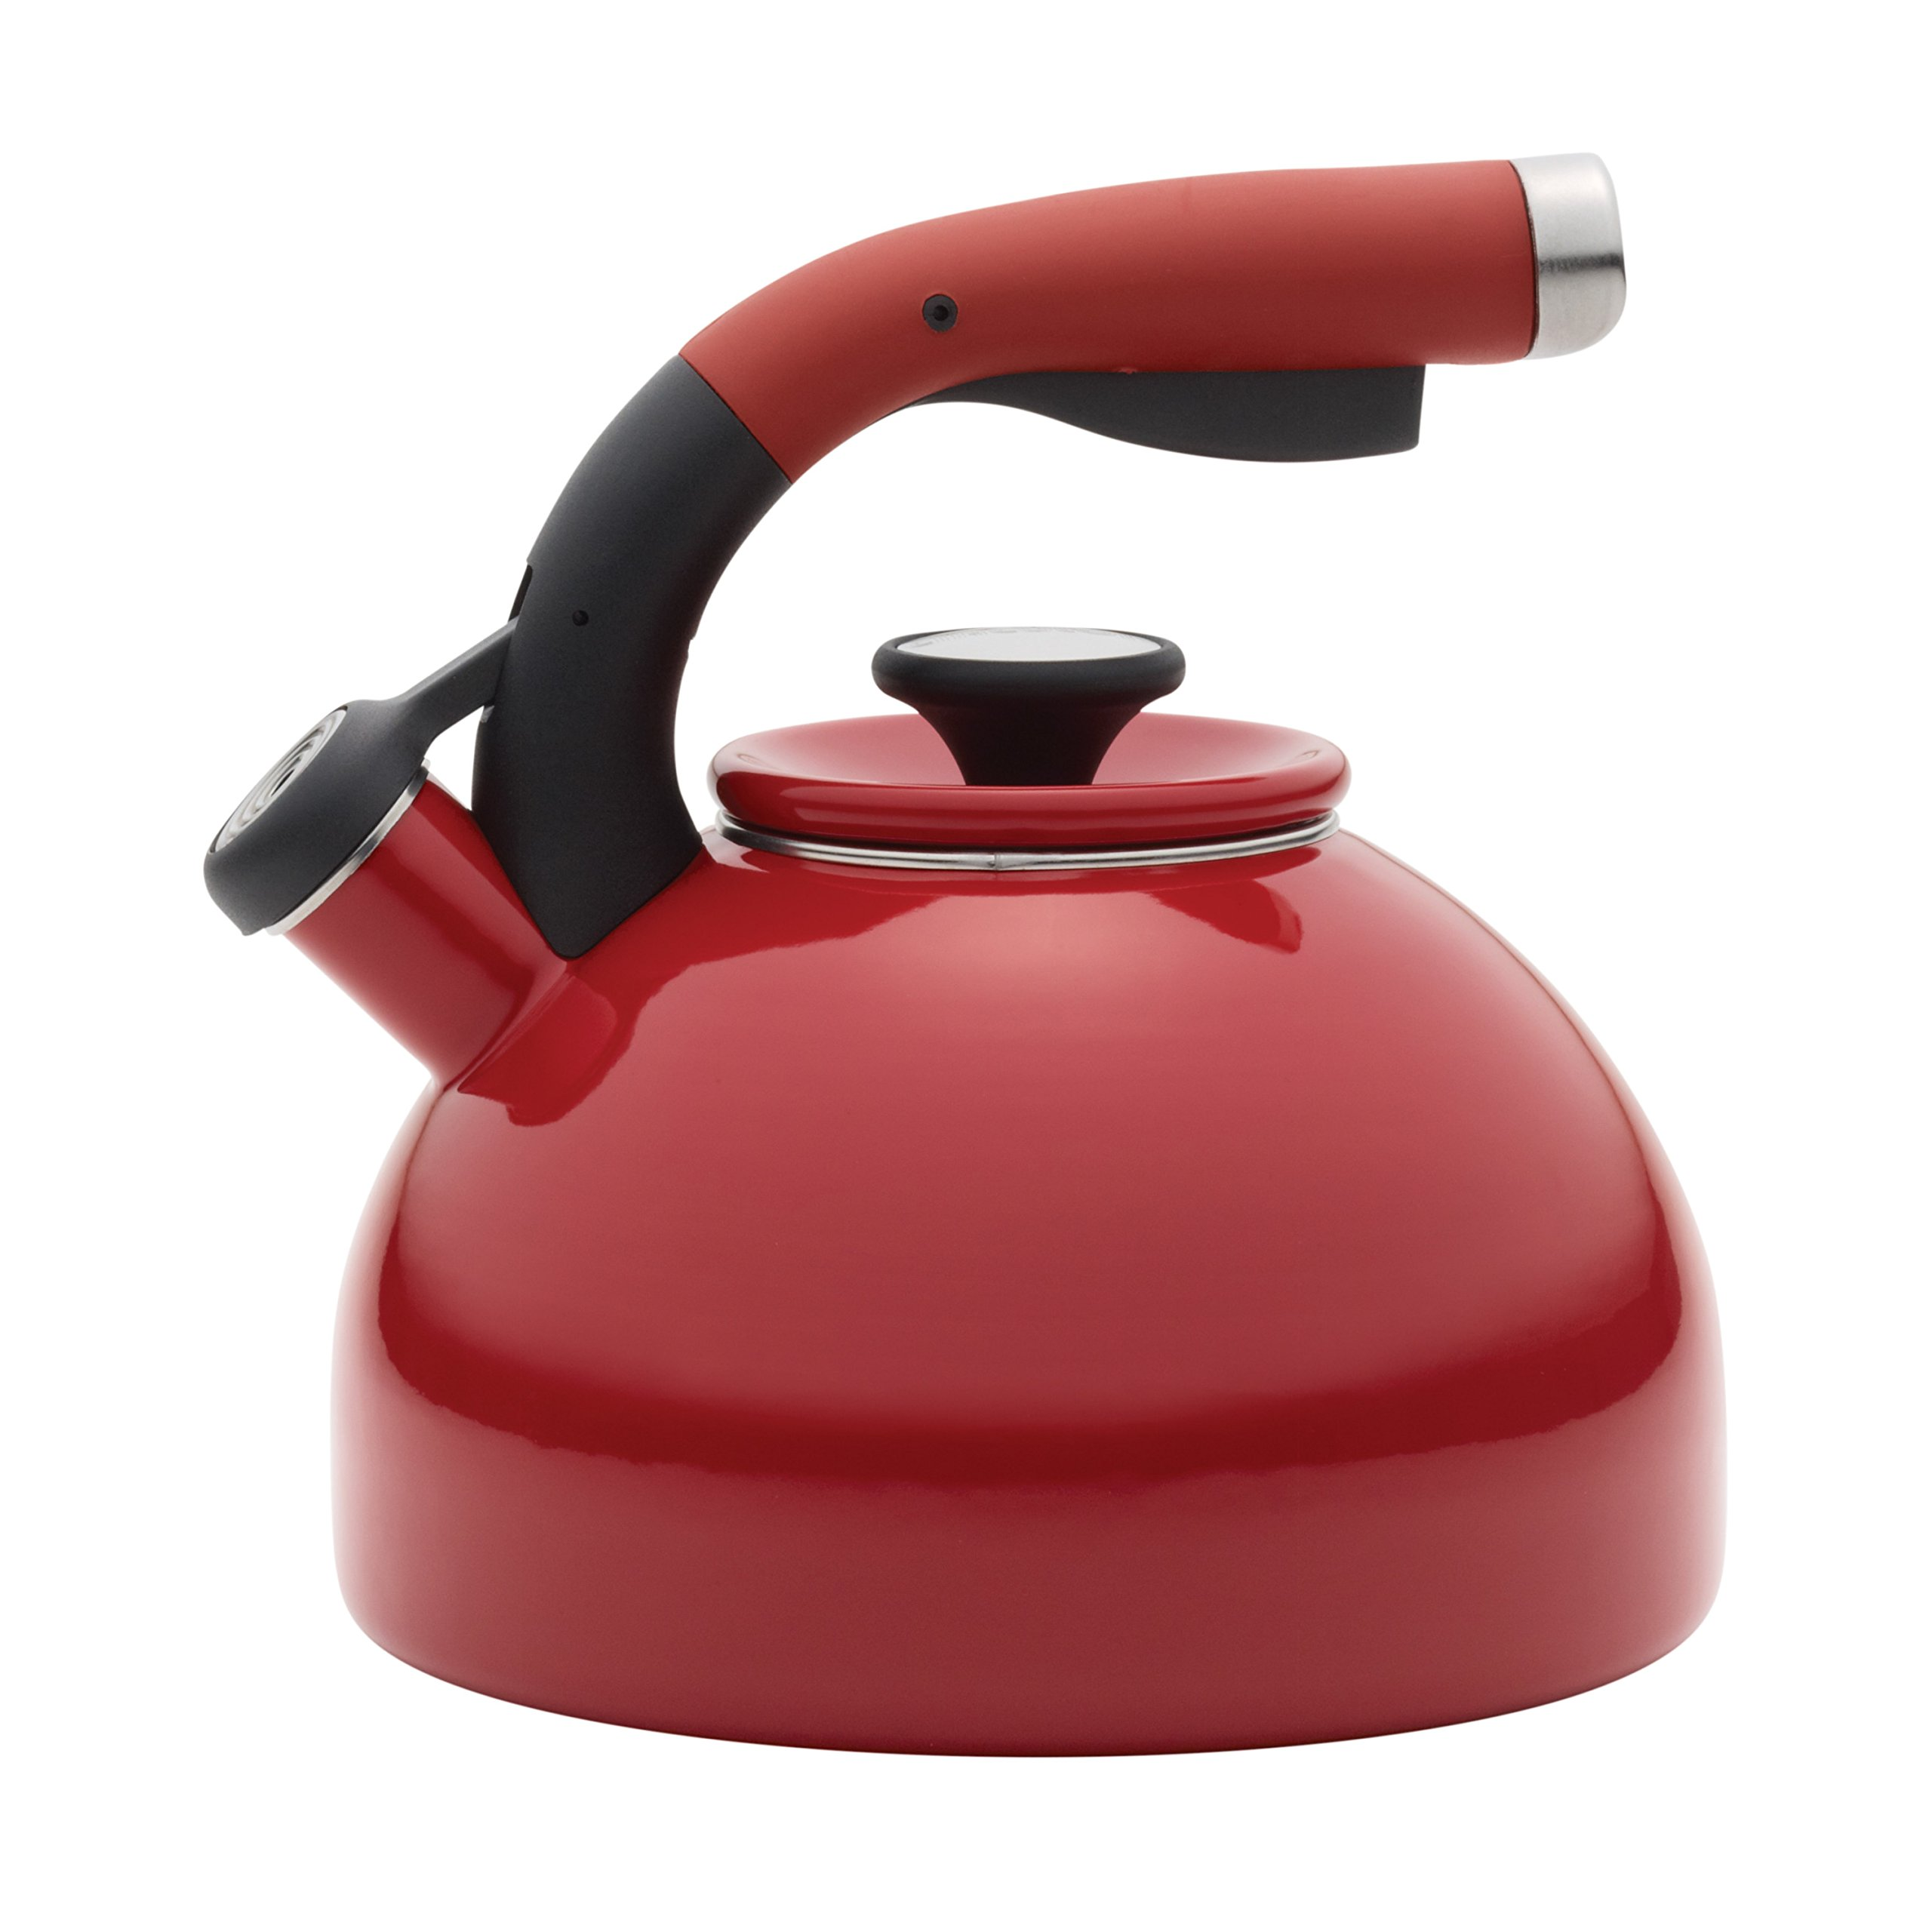 Circulon 2-Quart Morning Bird Teakettle, Circulon Red by Circulon (Image #1)